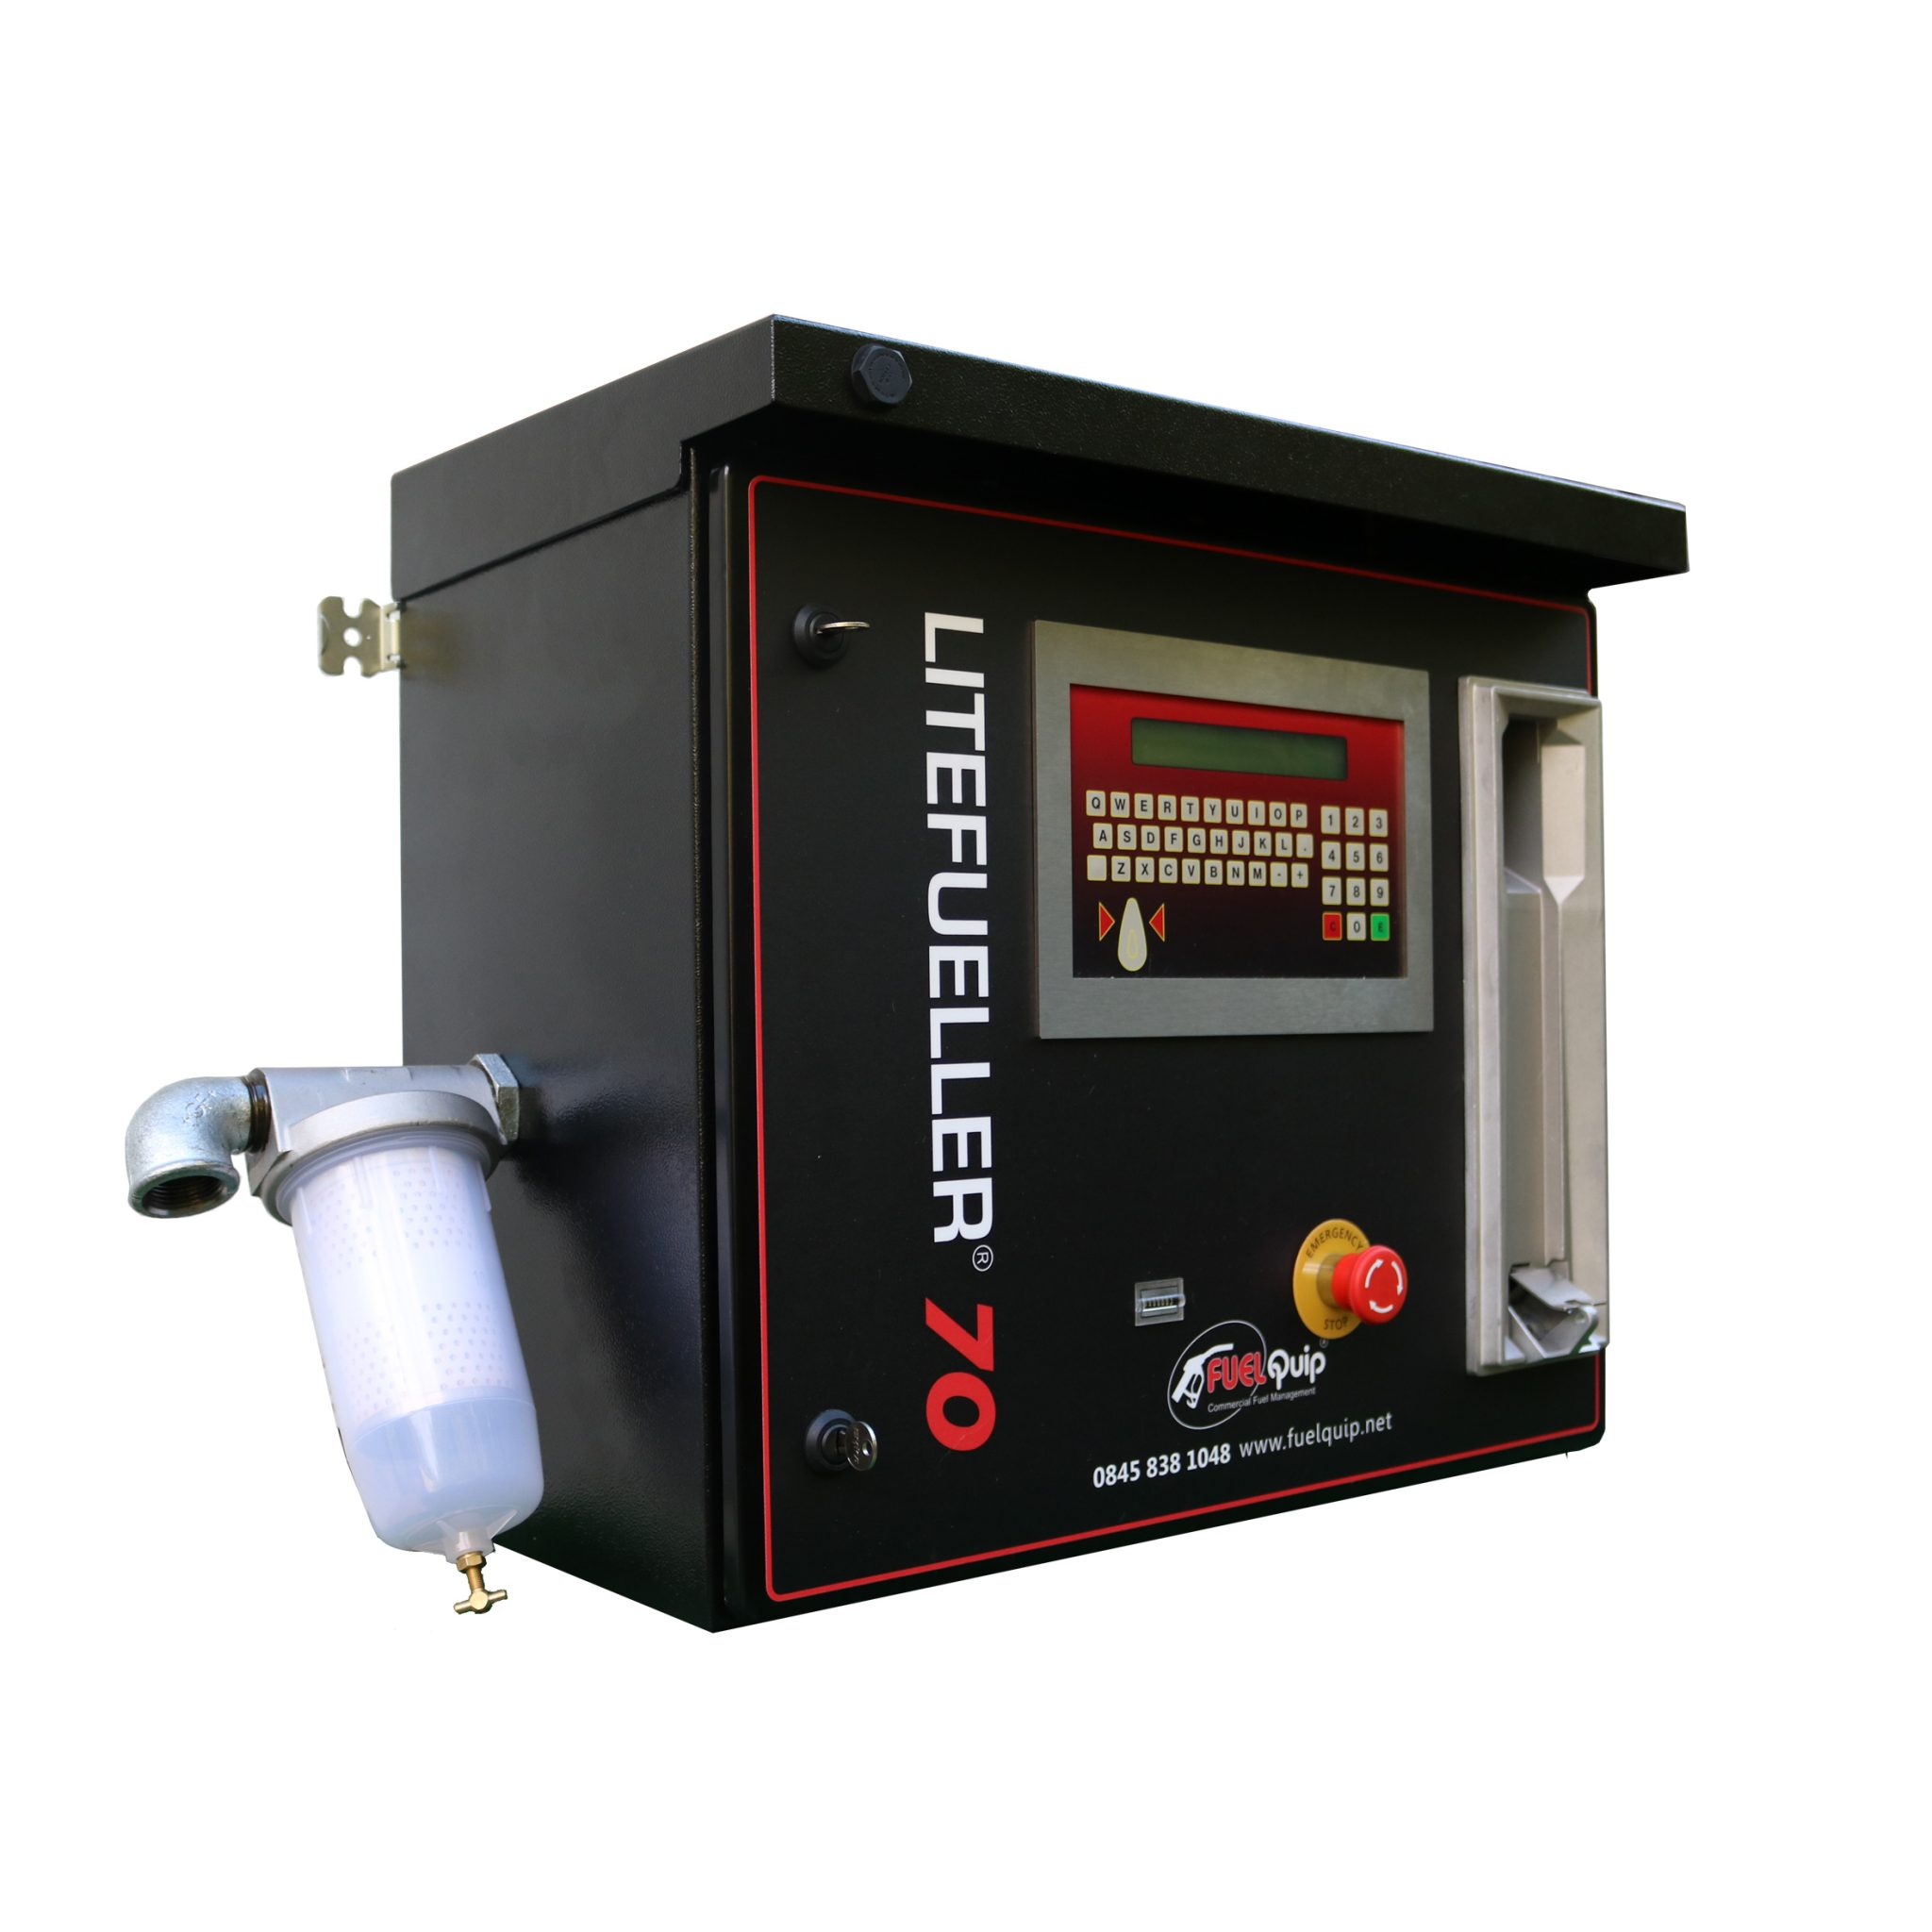 LiteFueller the compact pump & fuel management system